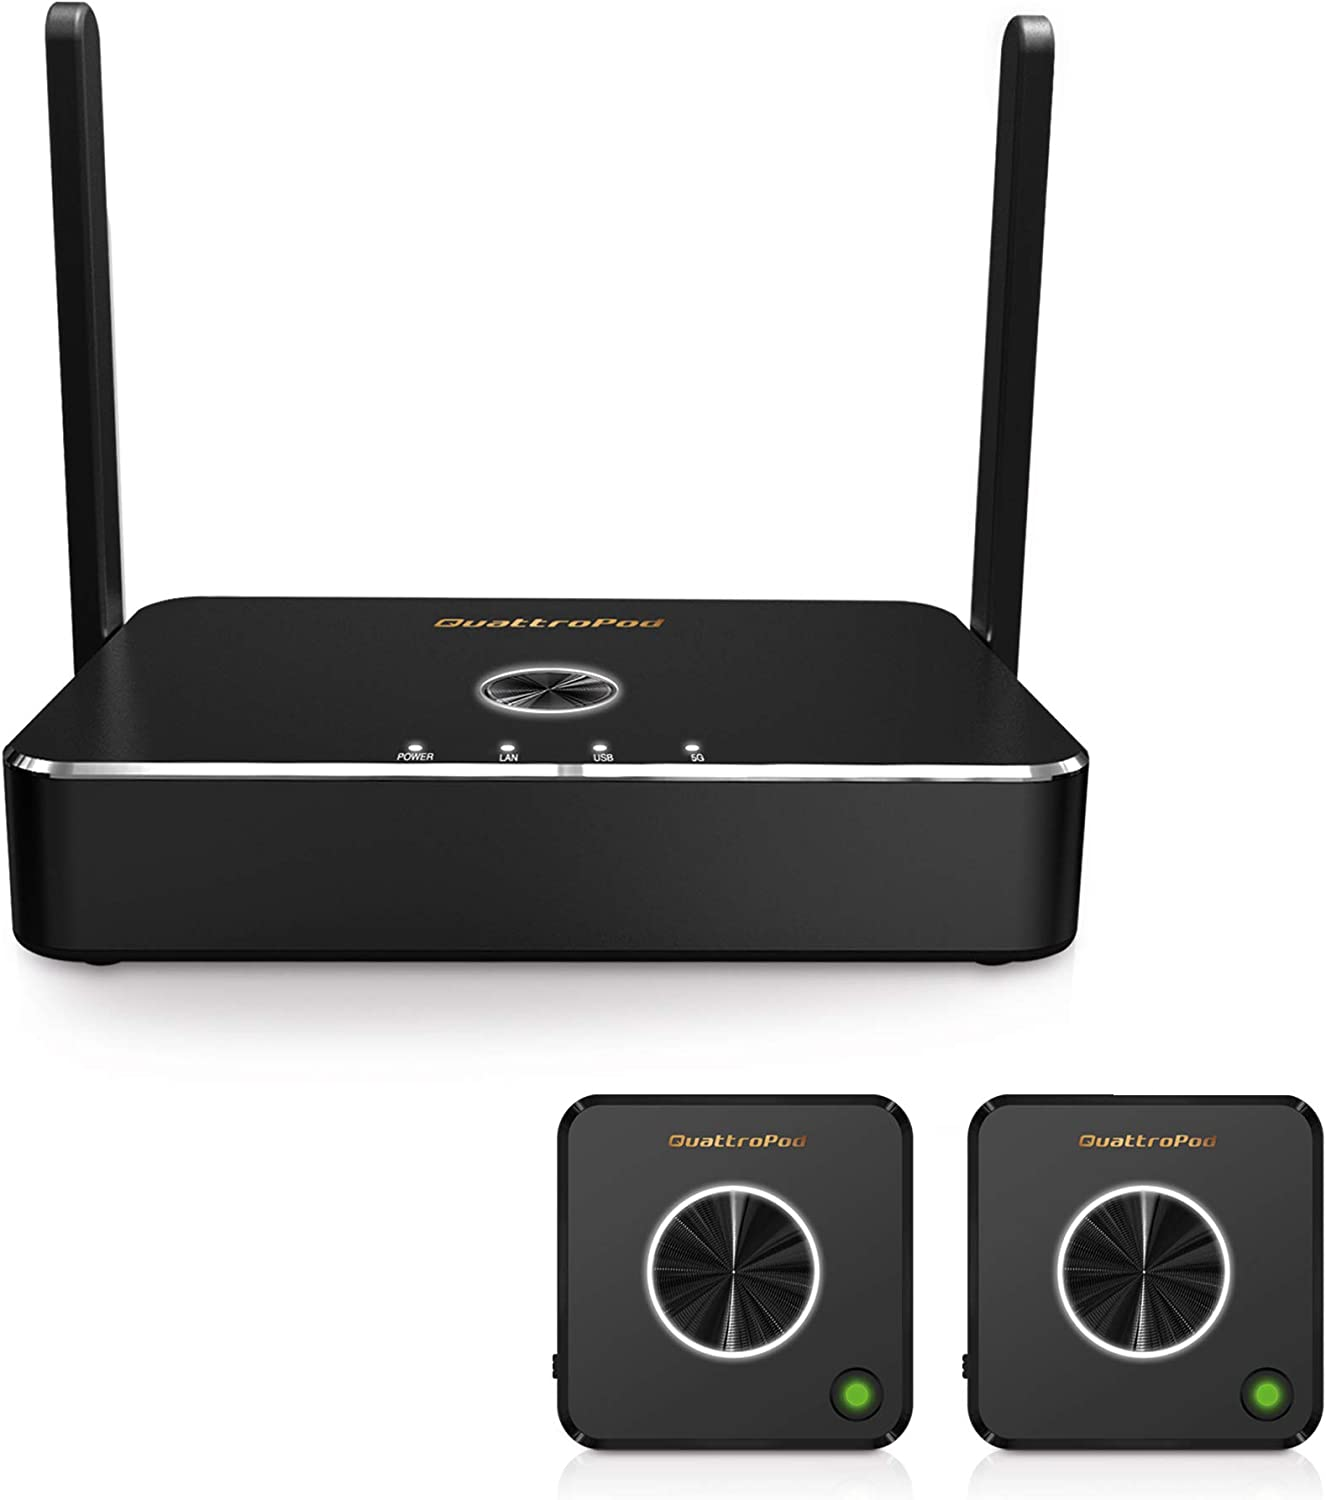 QuattroPod | 5G WiFi Wireless Presentation Facility HDMI Transmitter & Receiver for Streaming 4K from Laptop, PC, Smartphone to HDTV/Projector (2T1R)